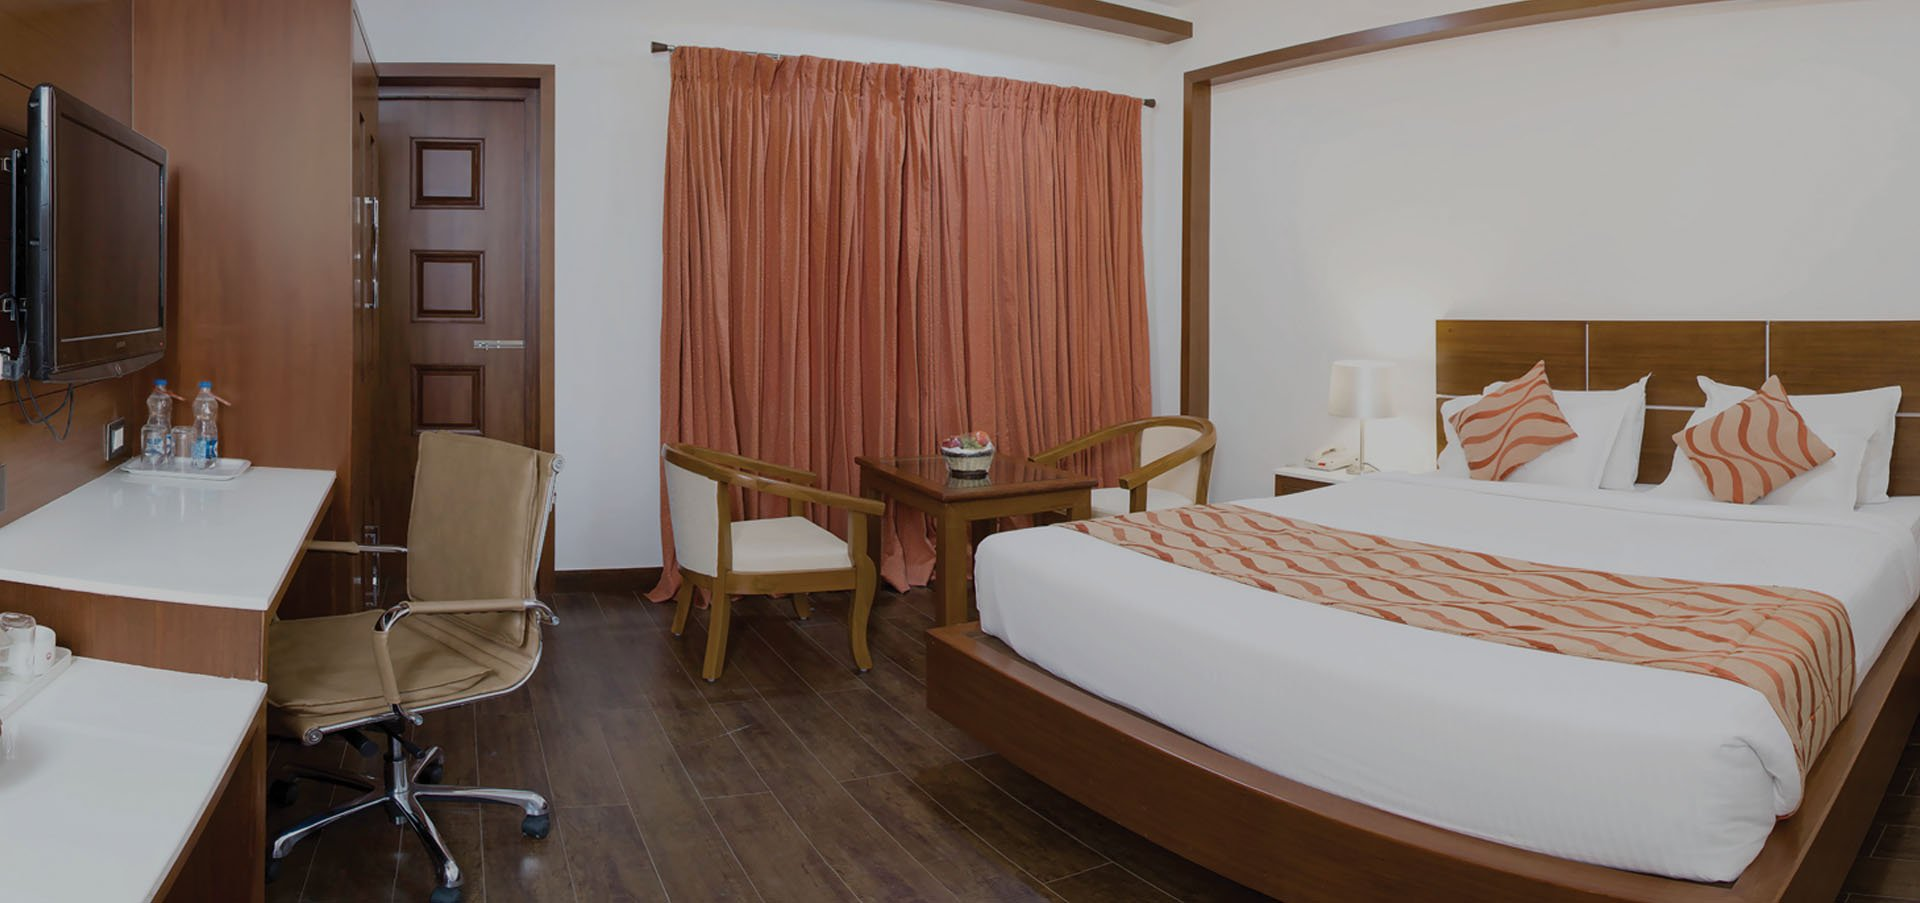 rooms in Trichy hotel Ramyas